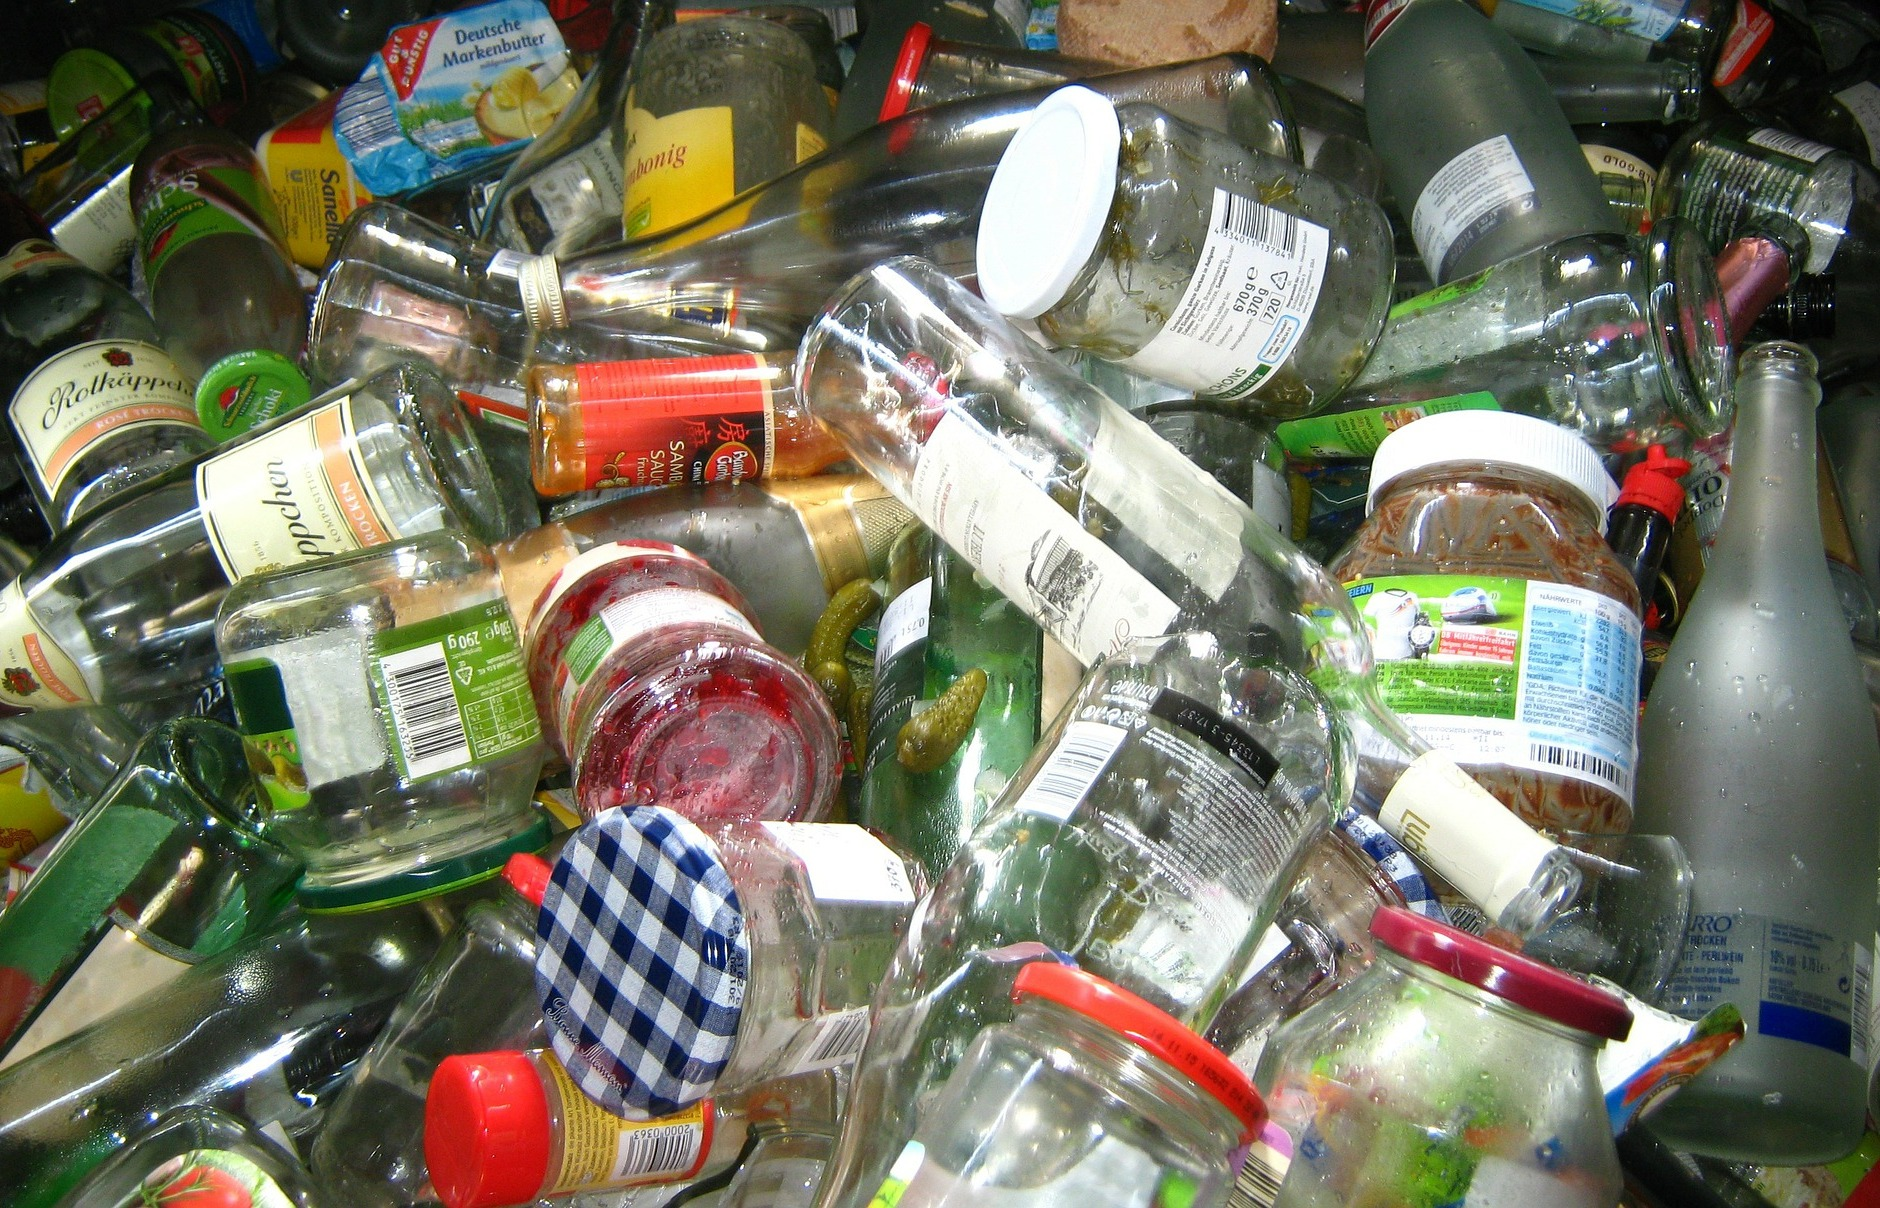 Greenlight provides glass recycling services in Argyll and Bute